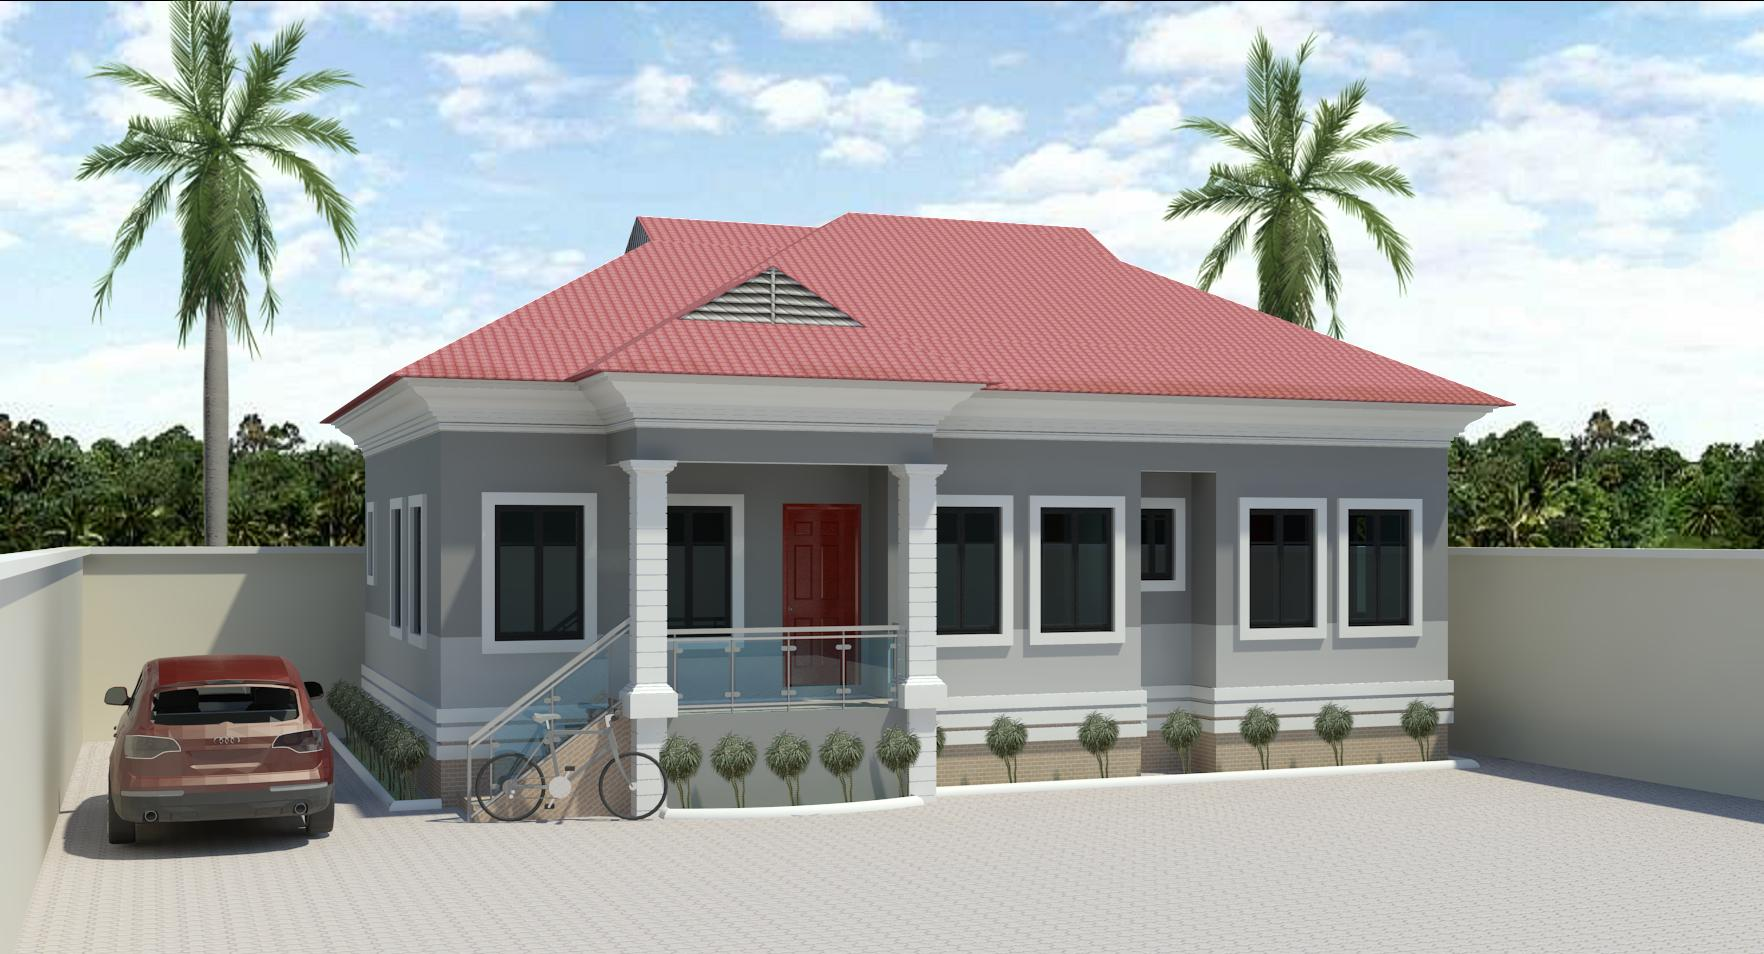 3bedroom bungalow designs in nigeria joy studio design